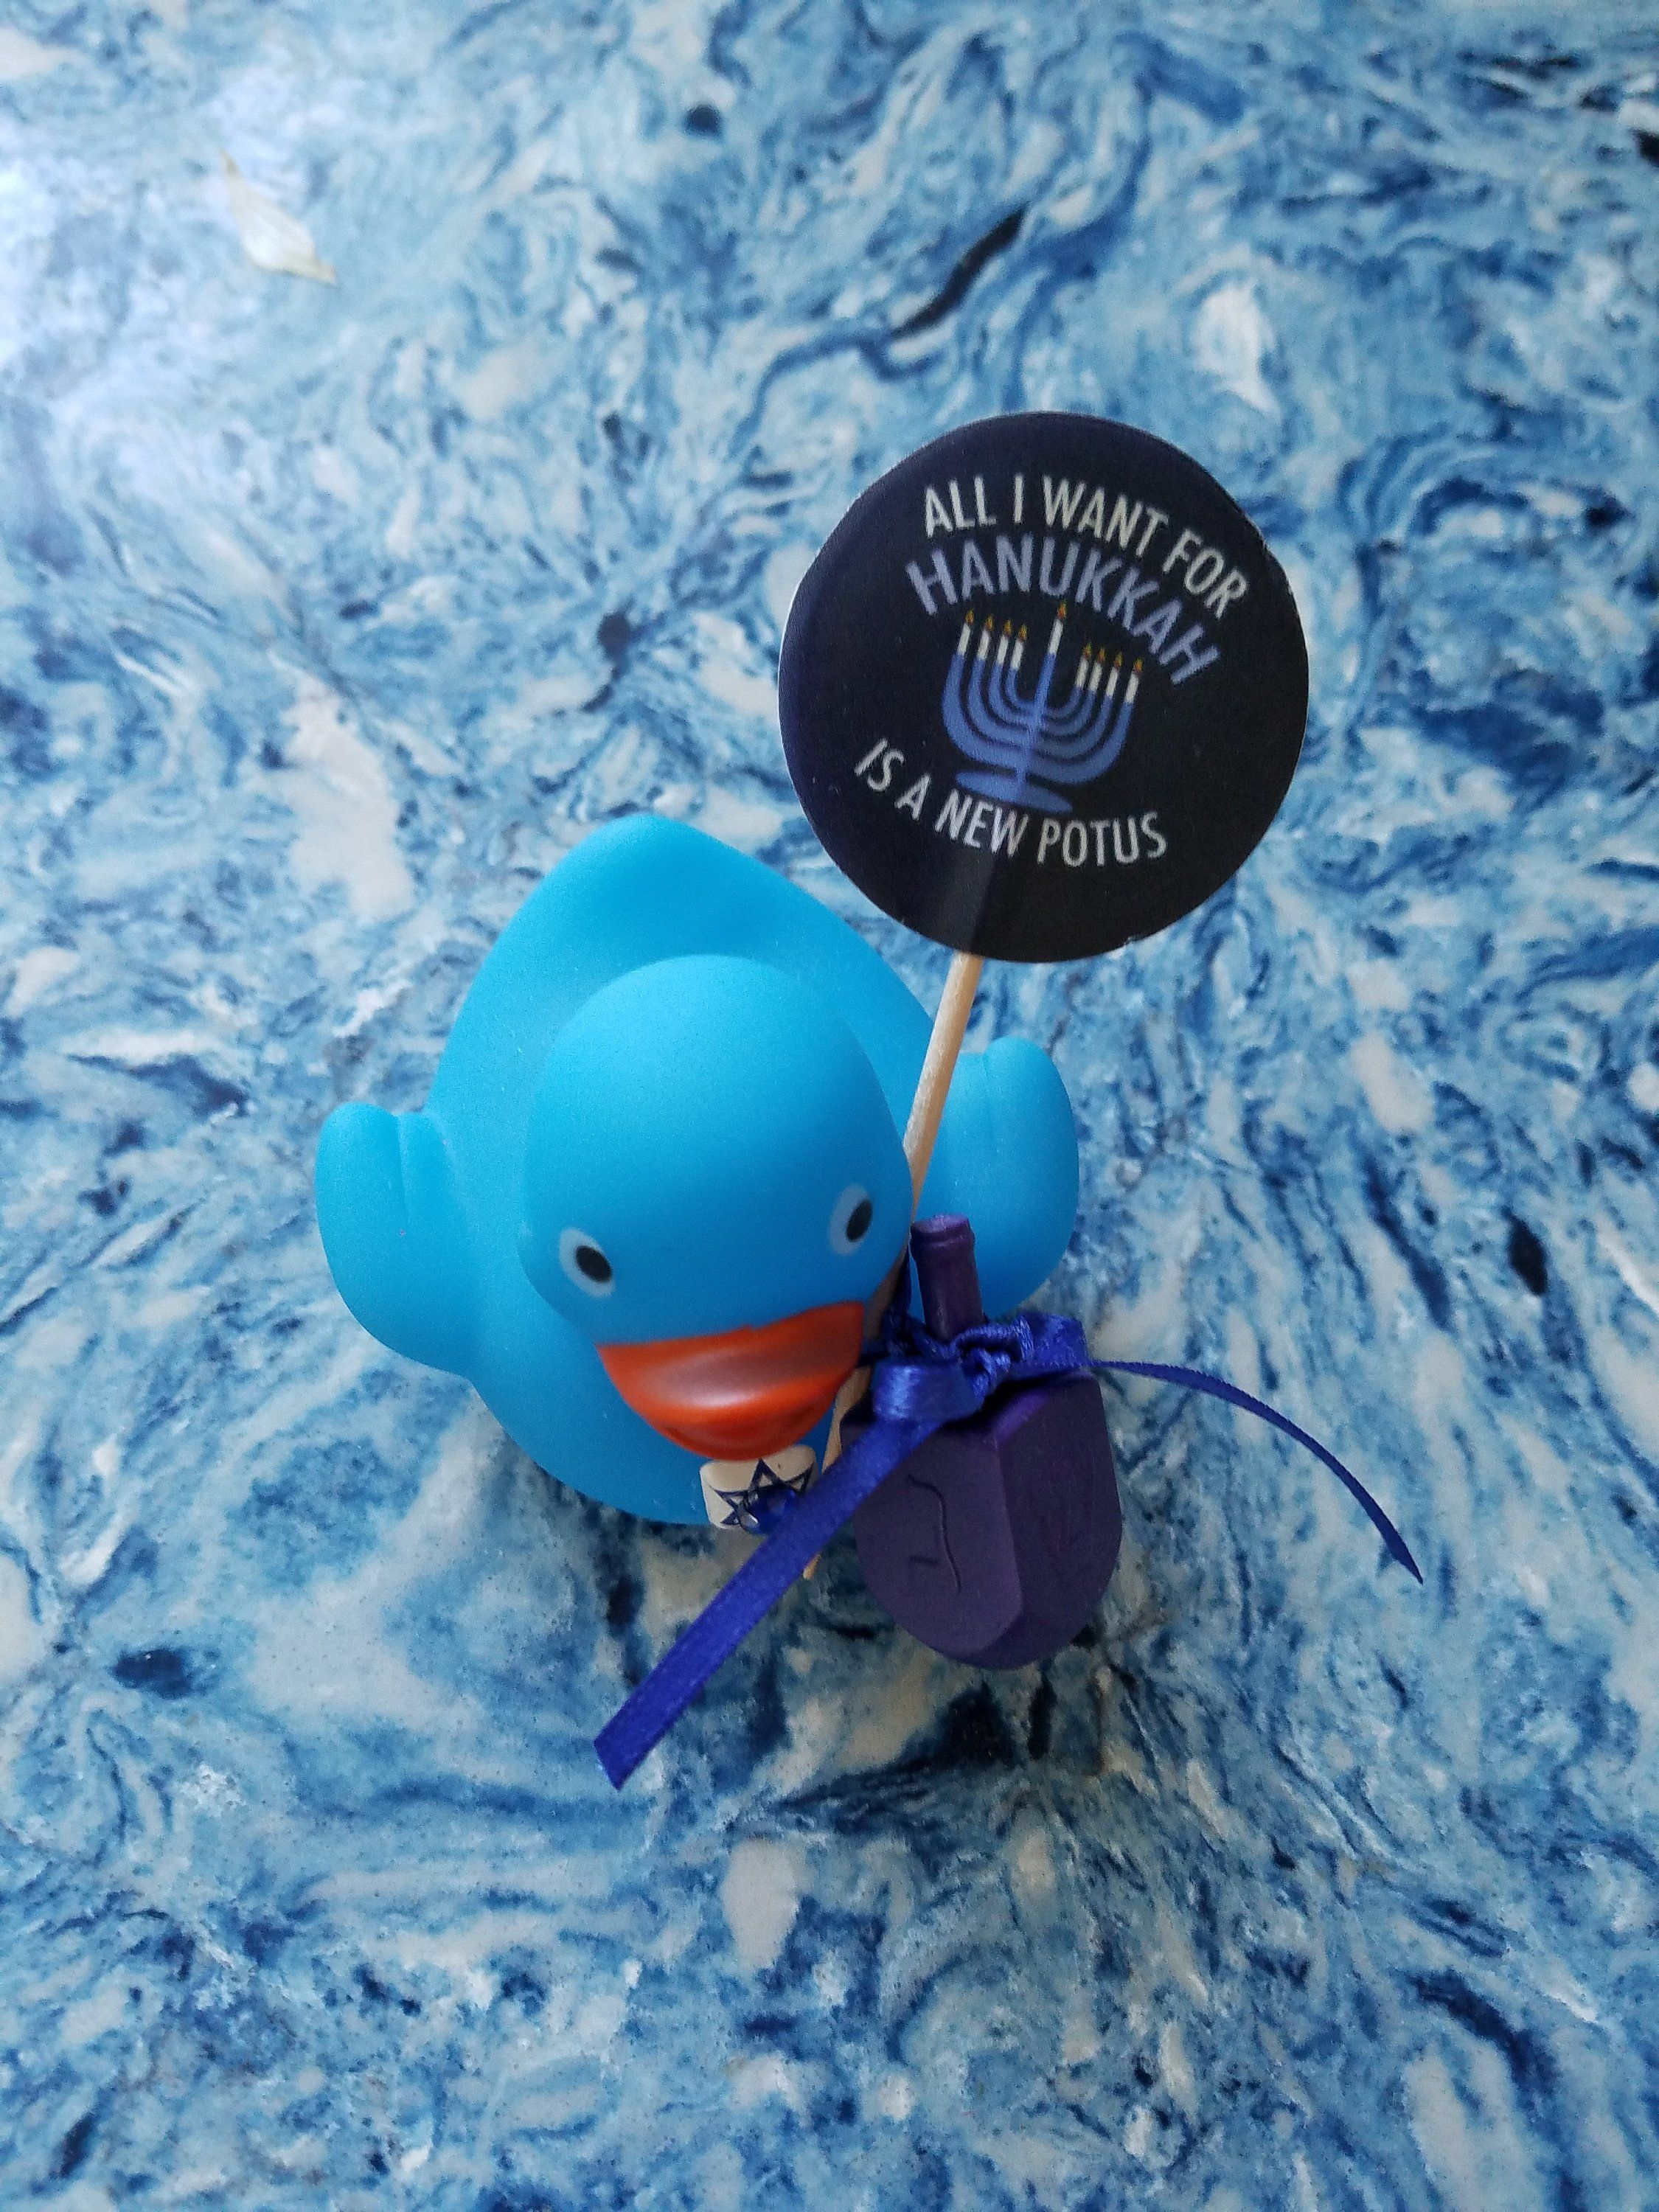 Hanukkah Ducky All I Want For Hanukkah Is A New Potus Blue Rubber Ducky Chanukah By Chelliescollectibles On Etsy In 2020 Rubber Ducky Hanukkah Ducky